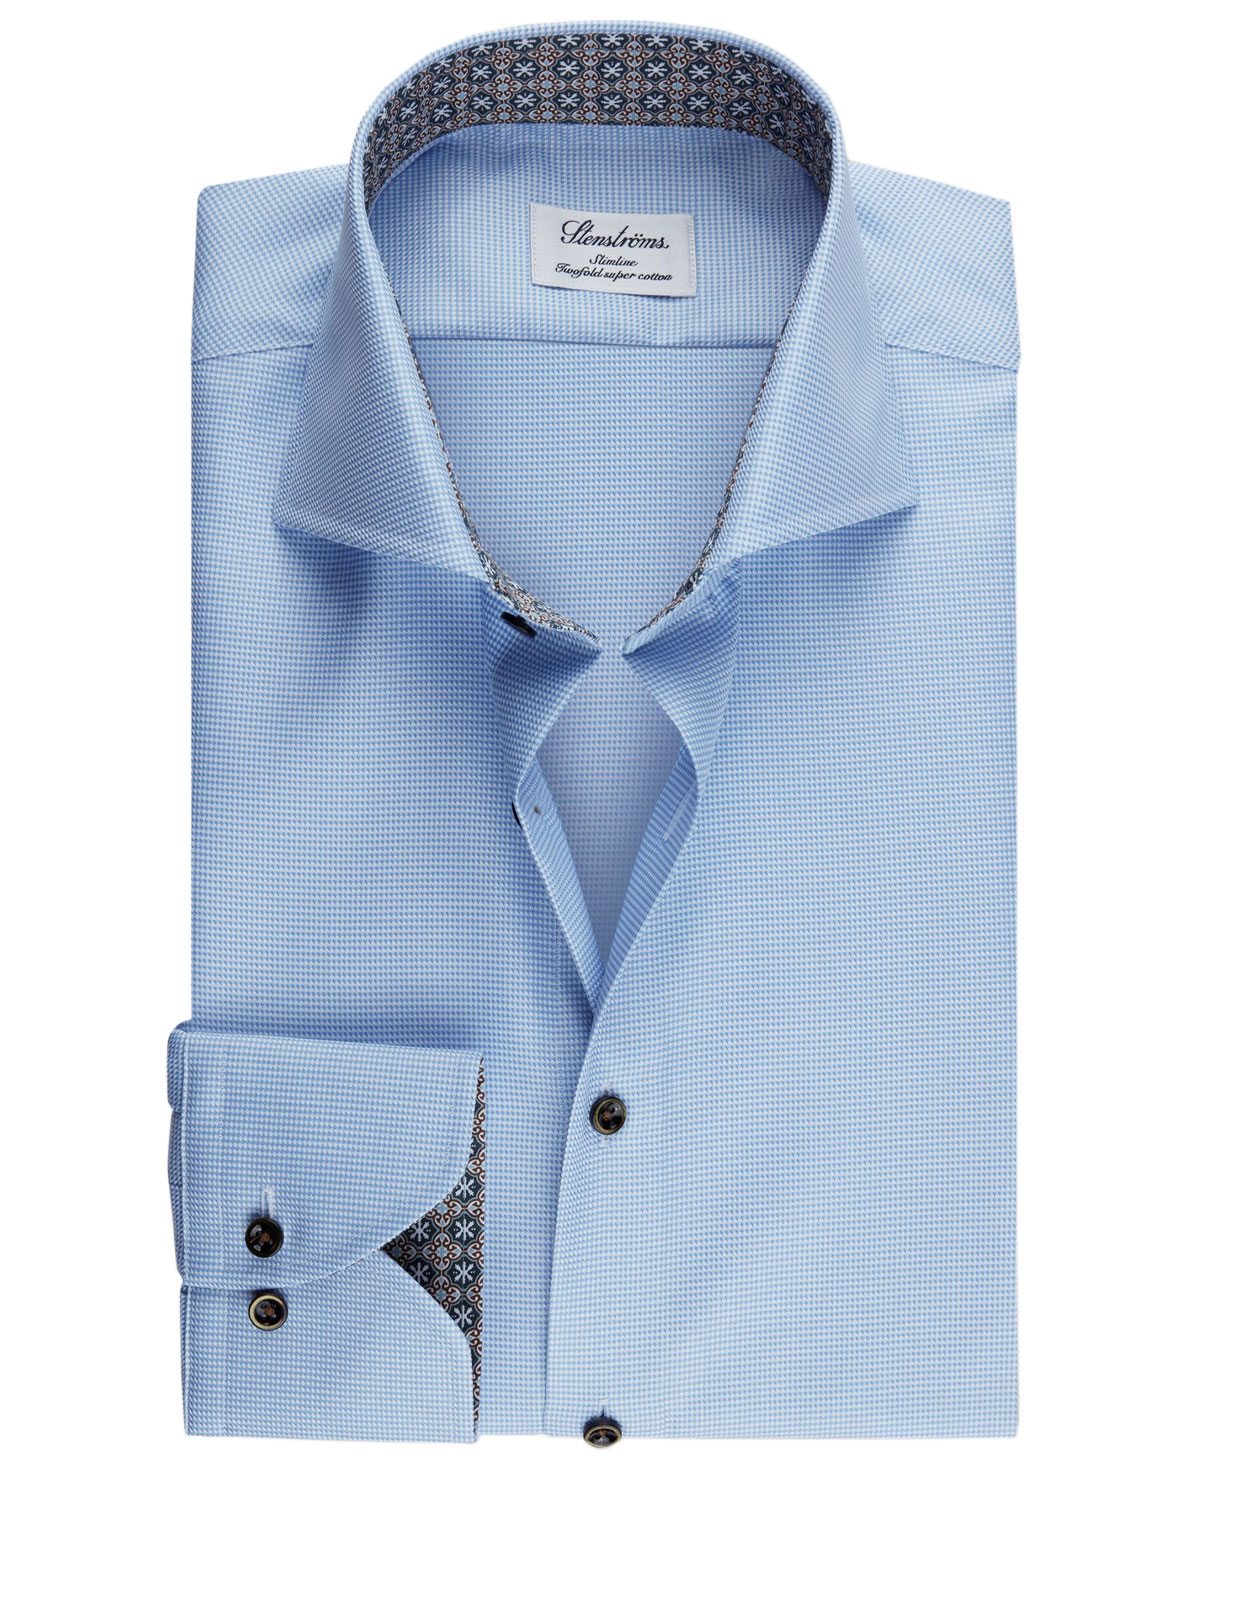 Slimline Shirt Houndstooth Medallion Contrast Light Blue